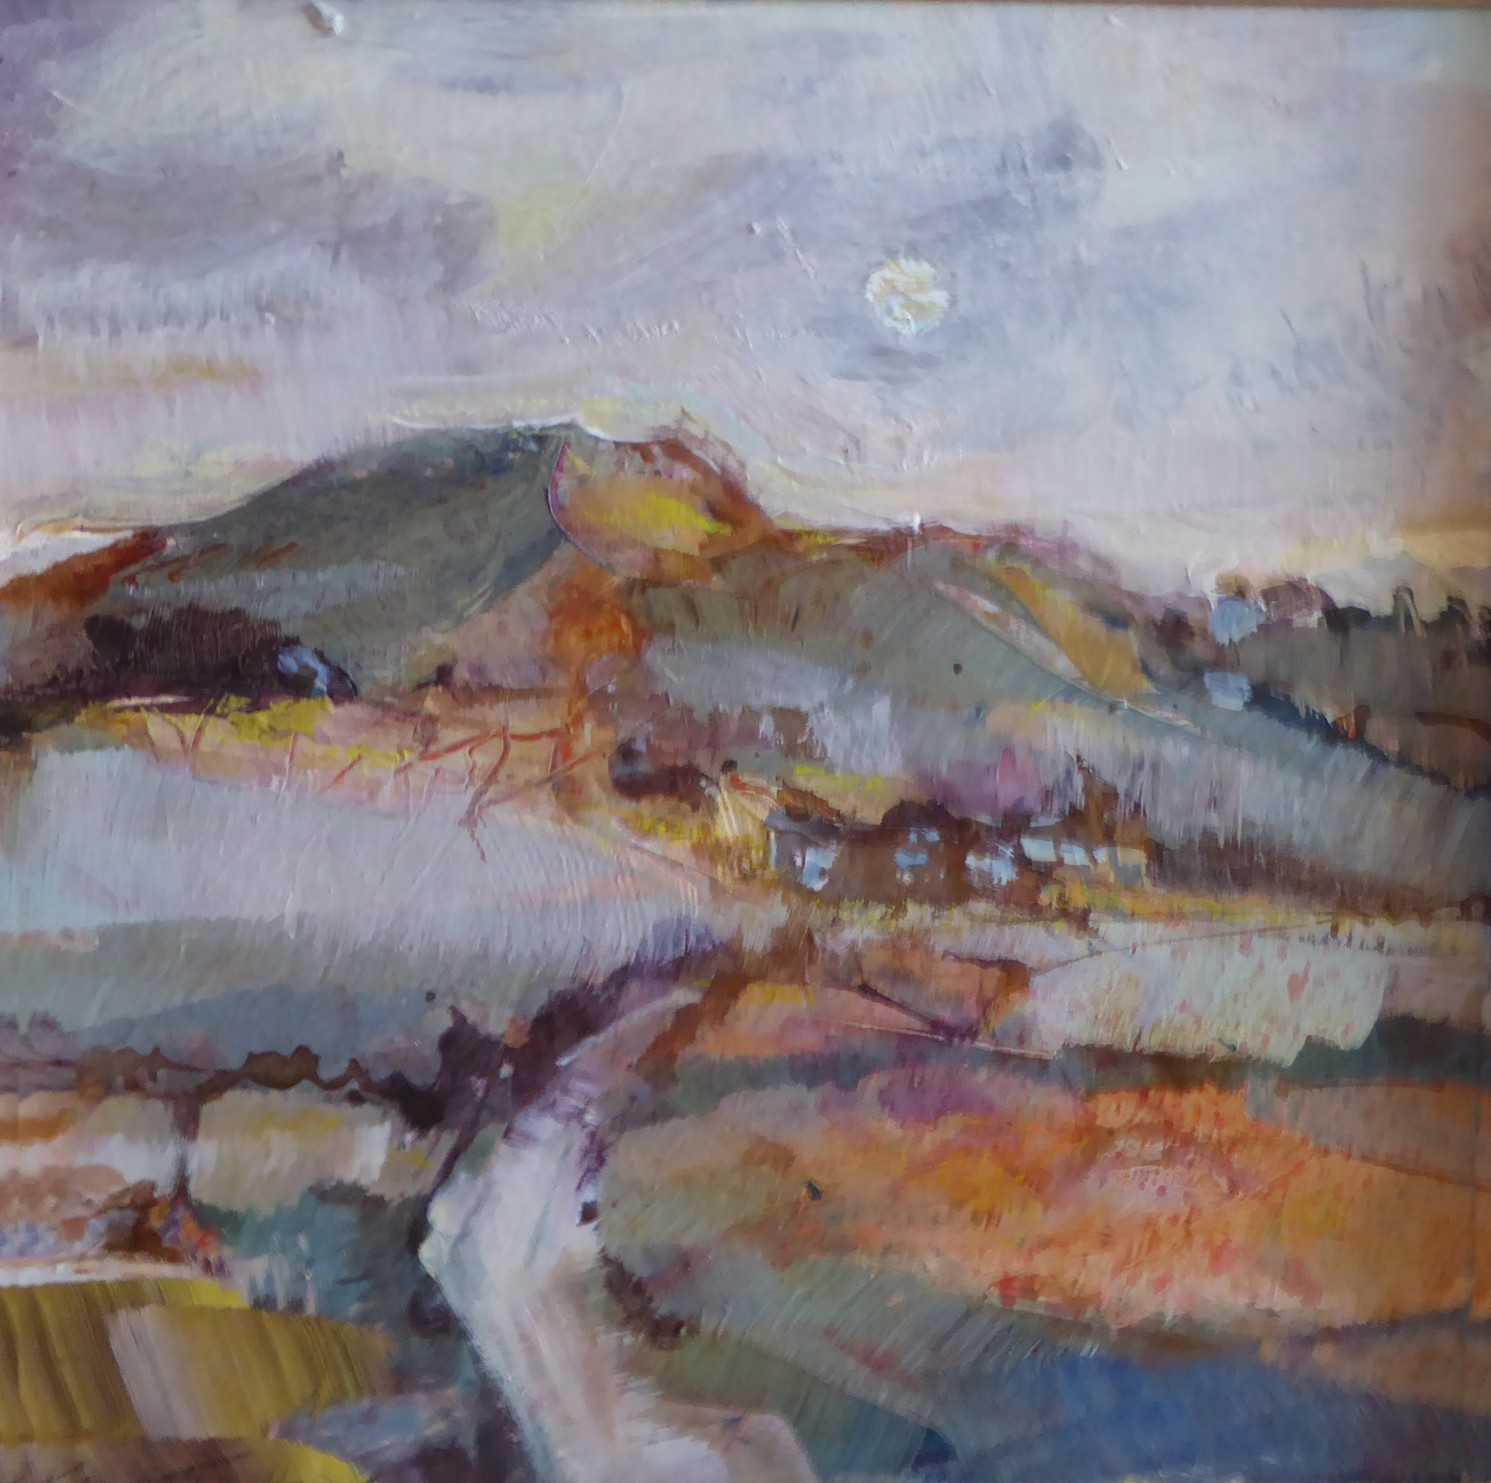 Path to the Moon   27 x 27 cm   Acryic on board